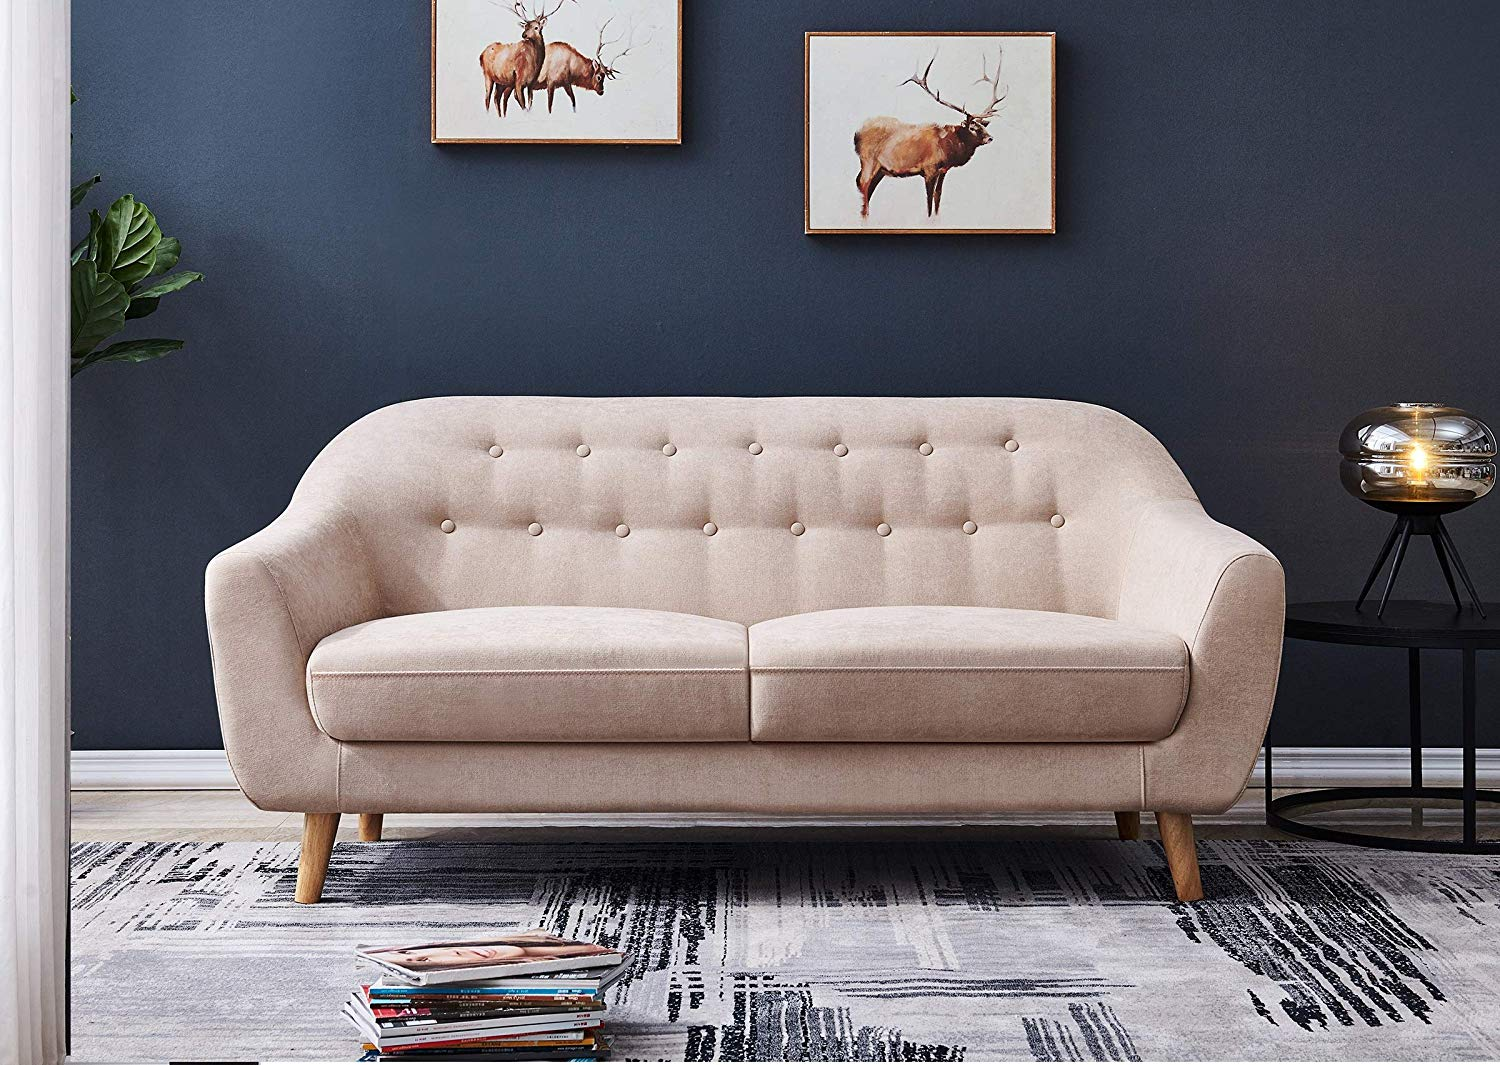 Mid Century 67�Fabric Loveseat Sofa Couch for Living Room Tufted Line Fabric Upholstered Accent Sofa Furniture (Grey)